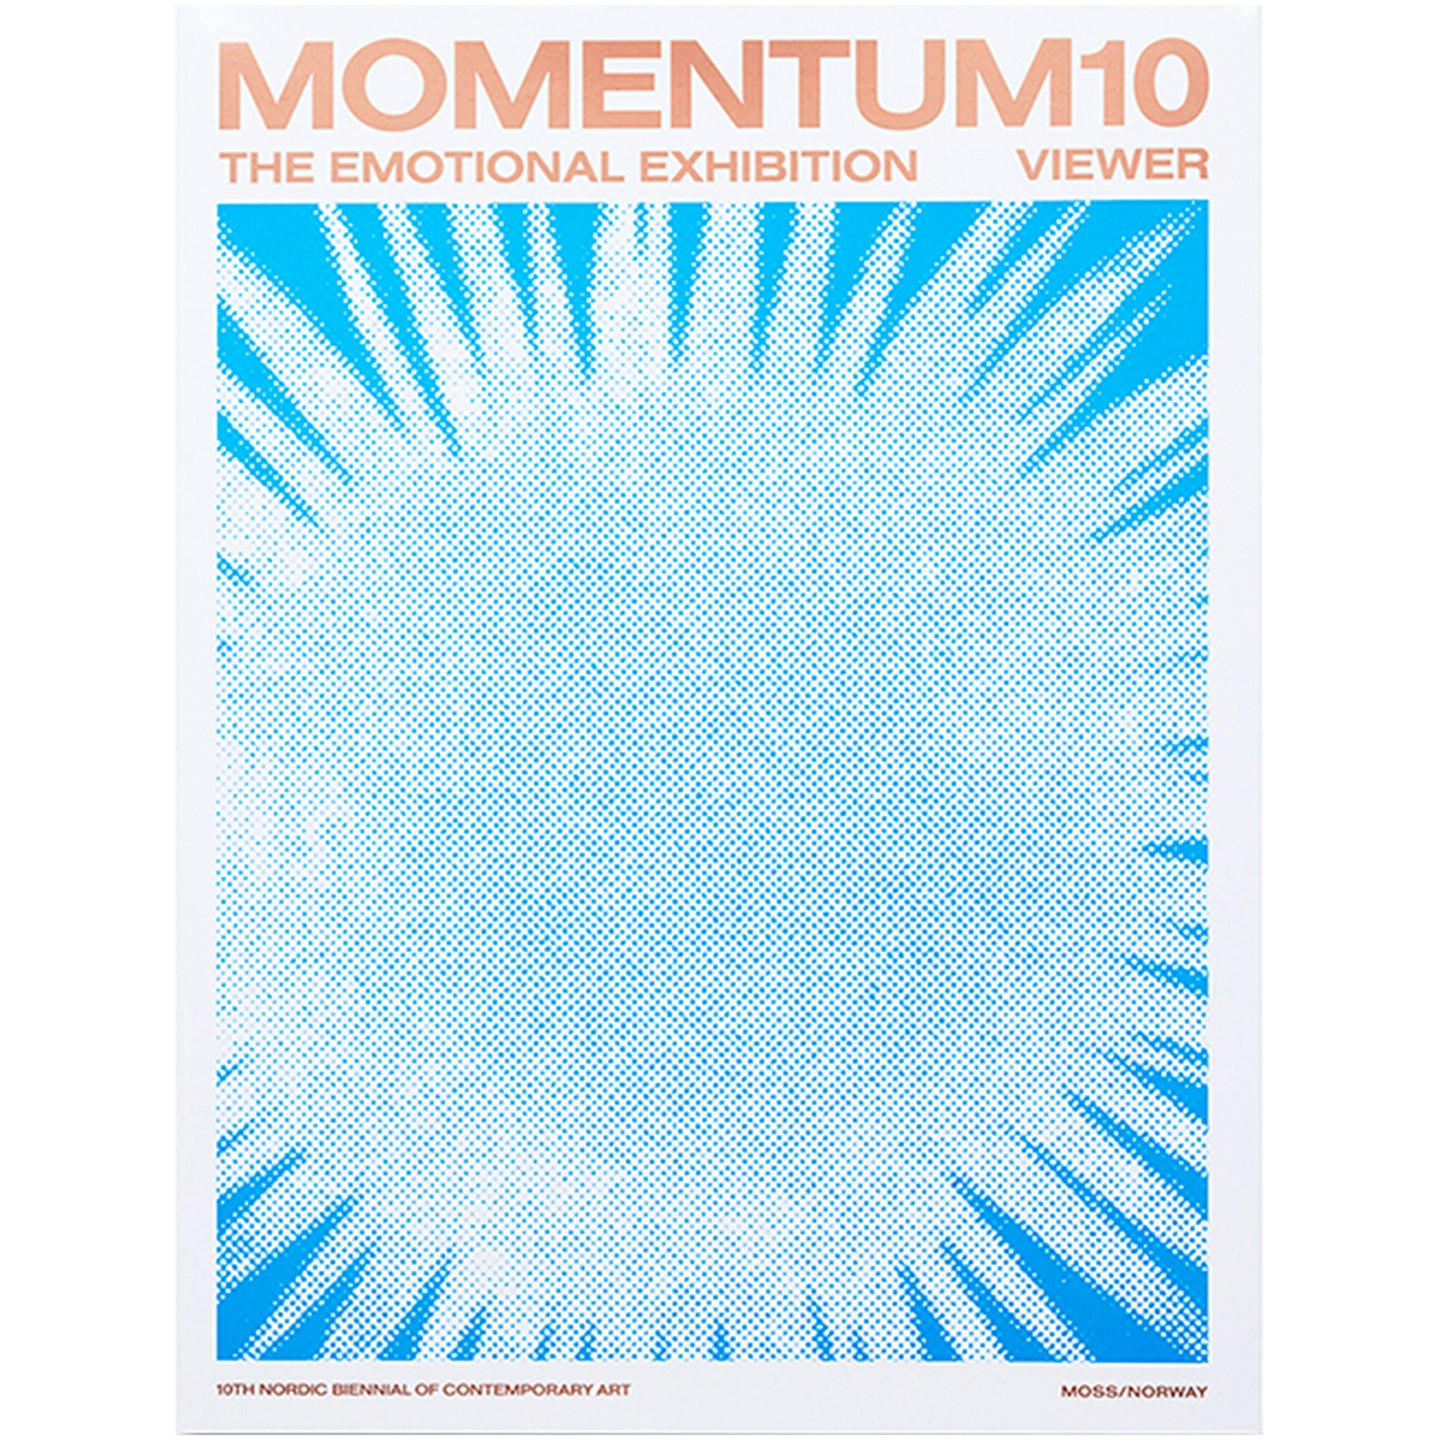 MOMENTUM10: THE VIEWER